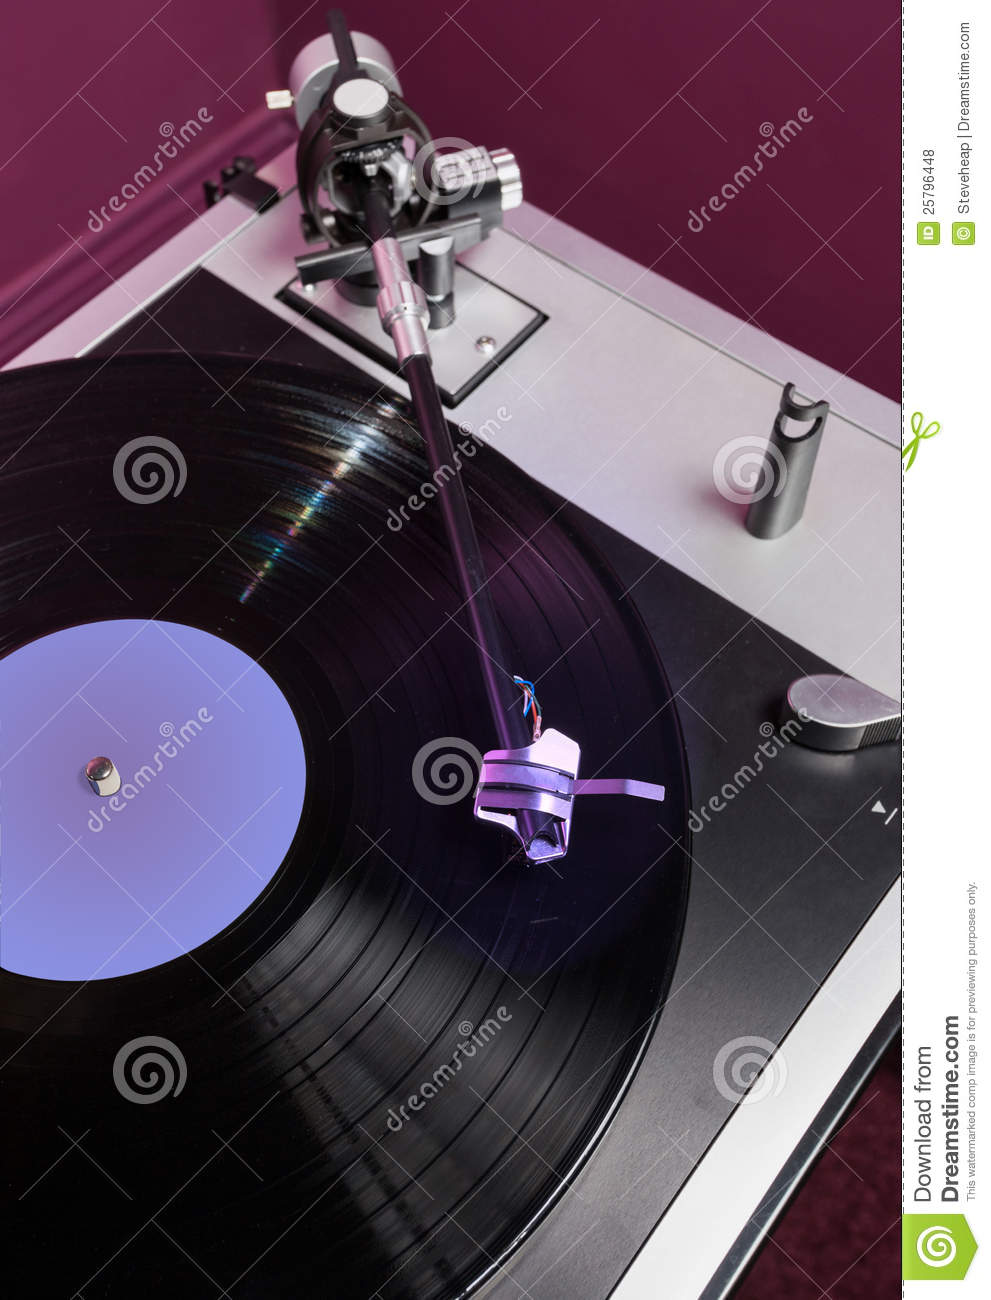 how to tell if a vinyl record is analog